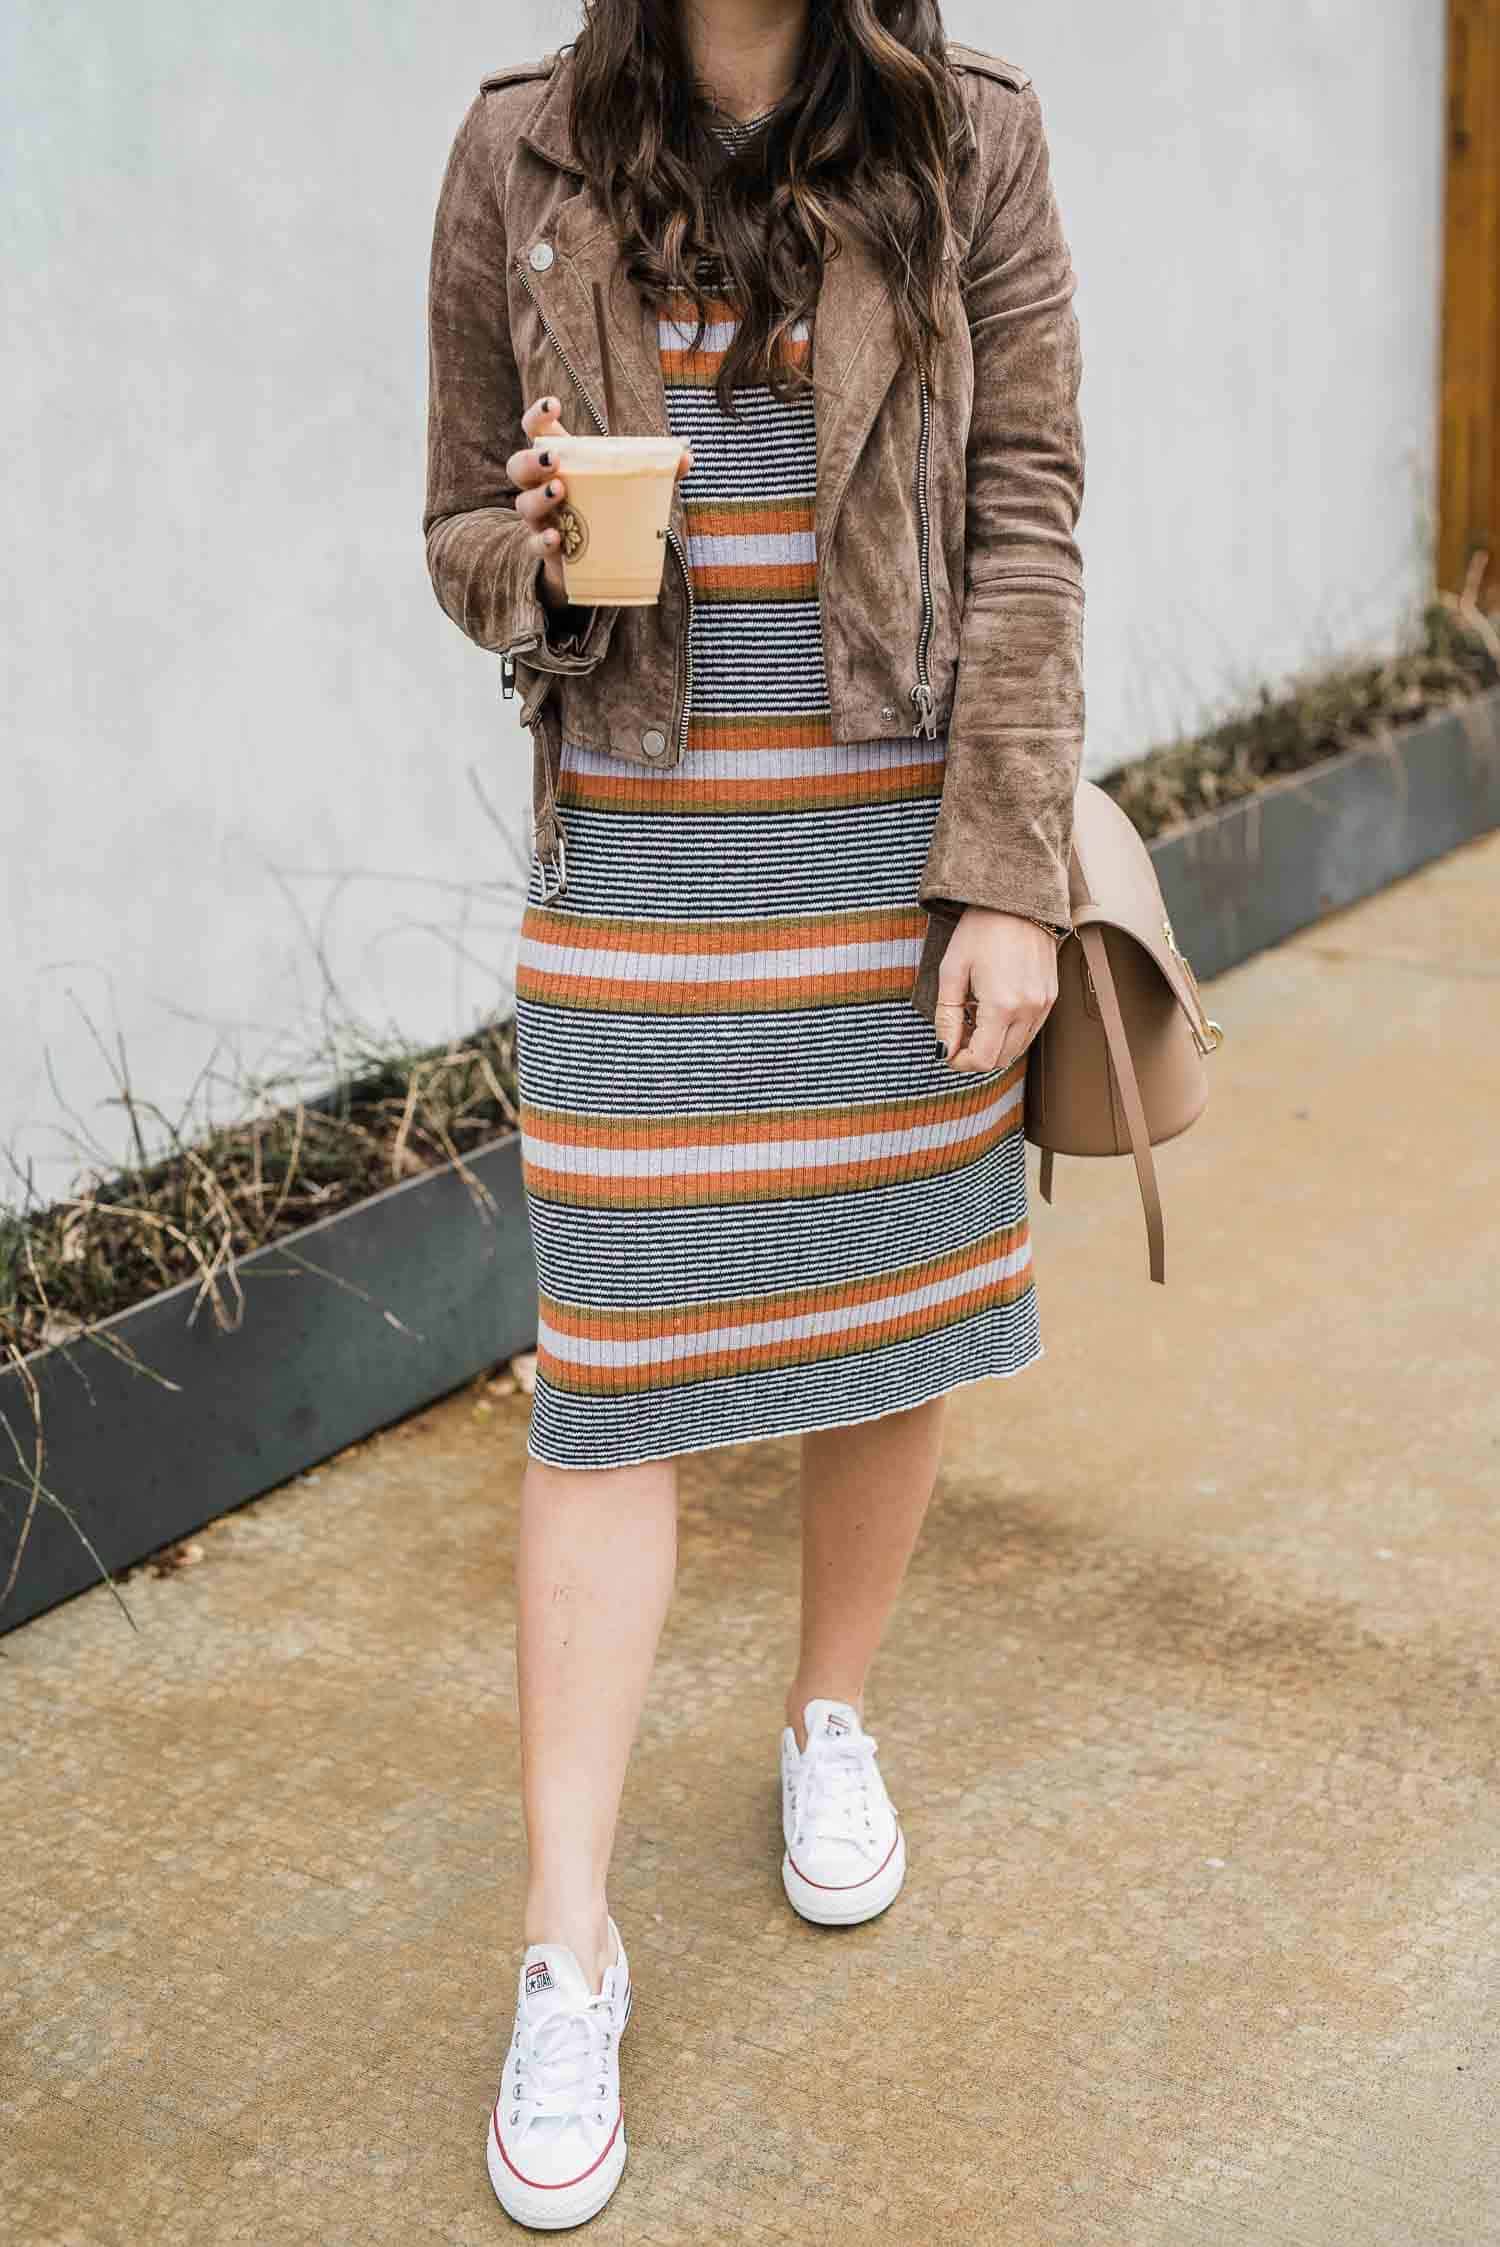 Madewell Striped Sweater Dress, Moto Jacket, Converse